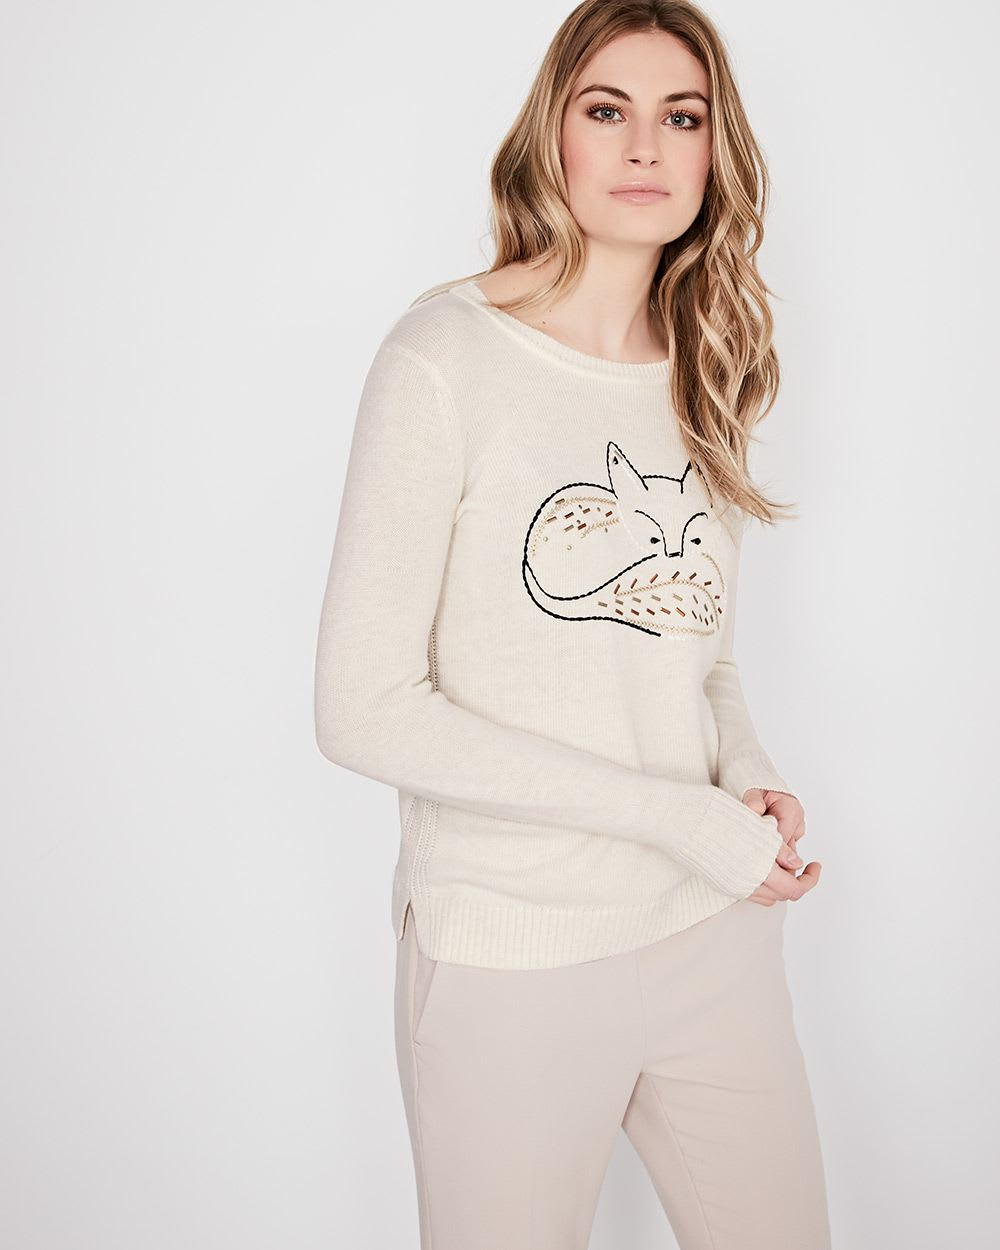 Cashmere-like Sweater with fox embroidery